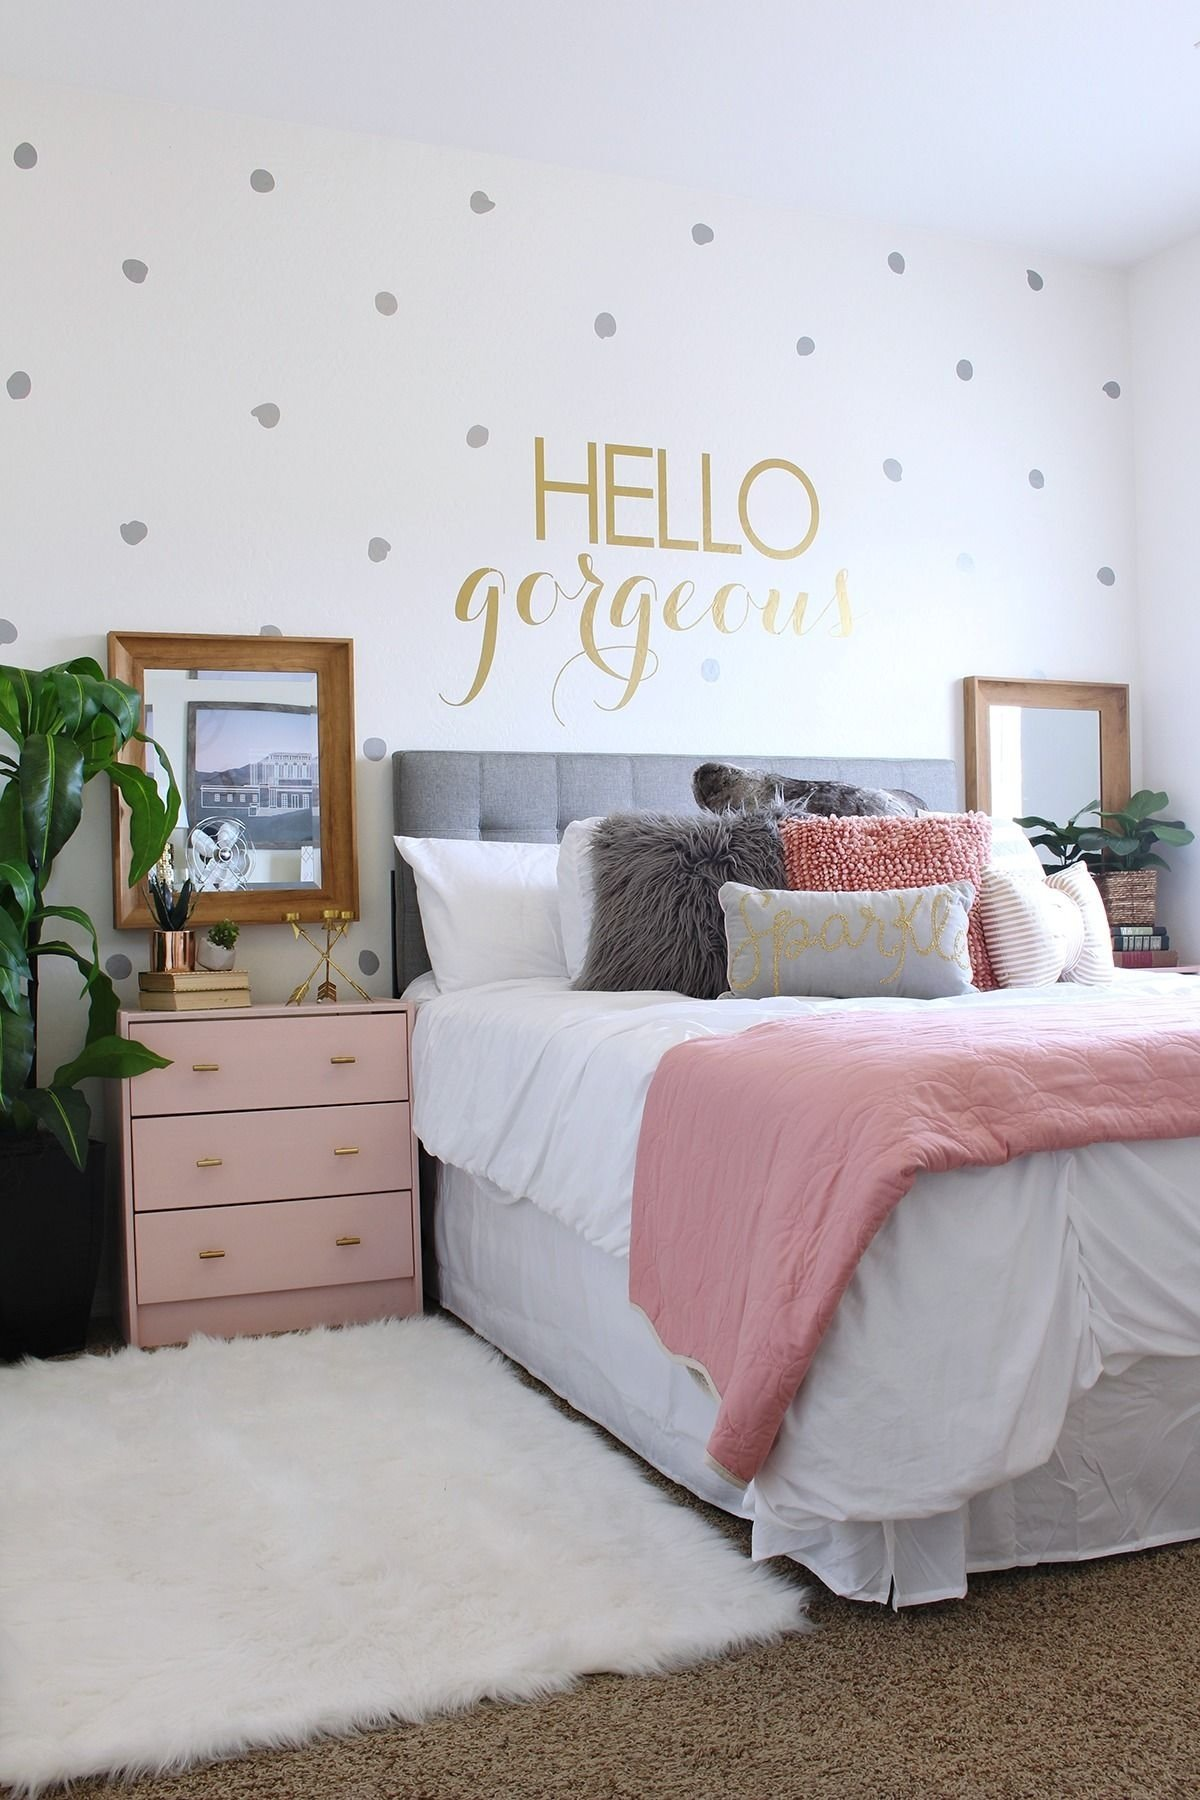 10 Most Recommended Ideas For Teenage Girls Rooms surprise teen girls bedroom makeover teen room makeover polka 2 2020